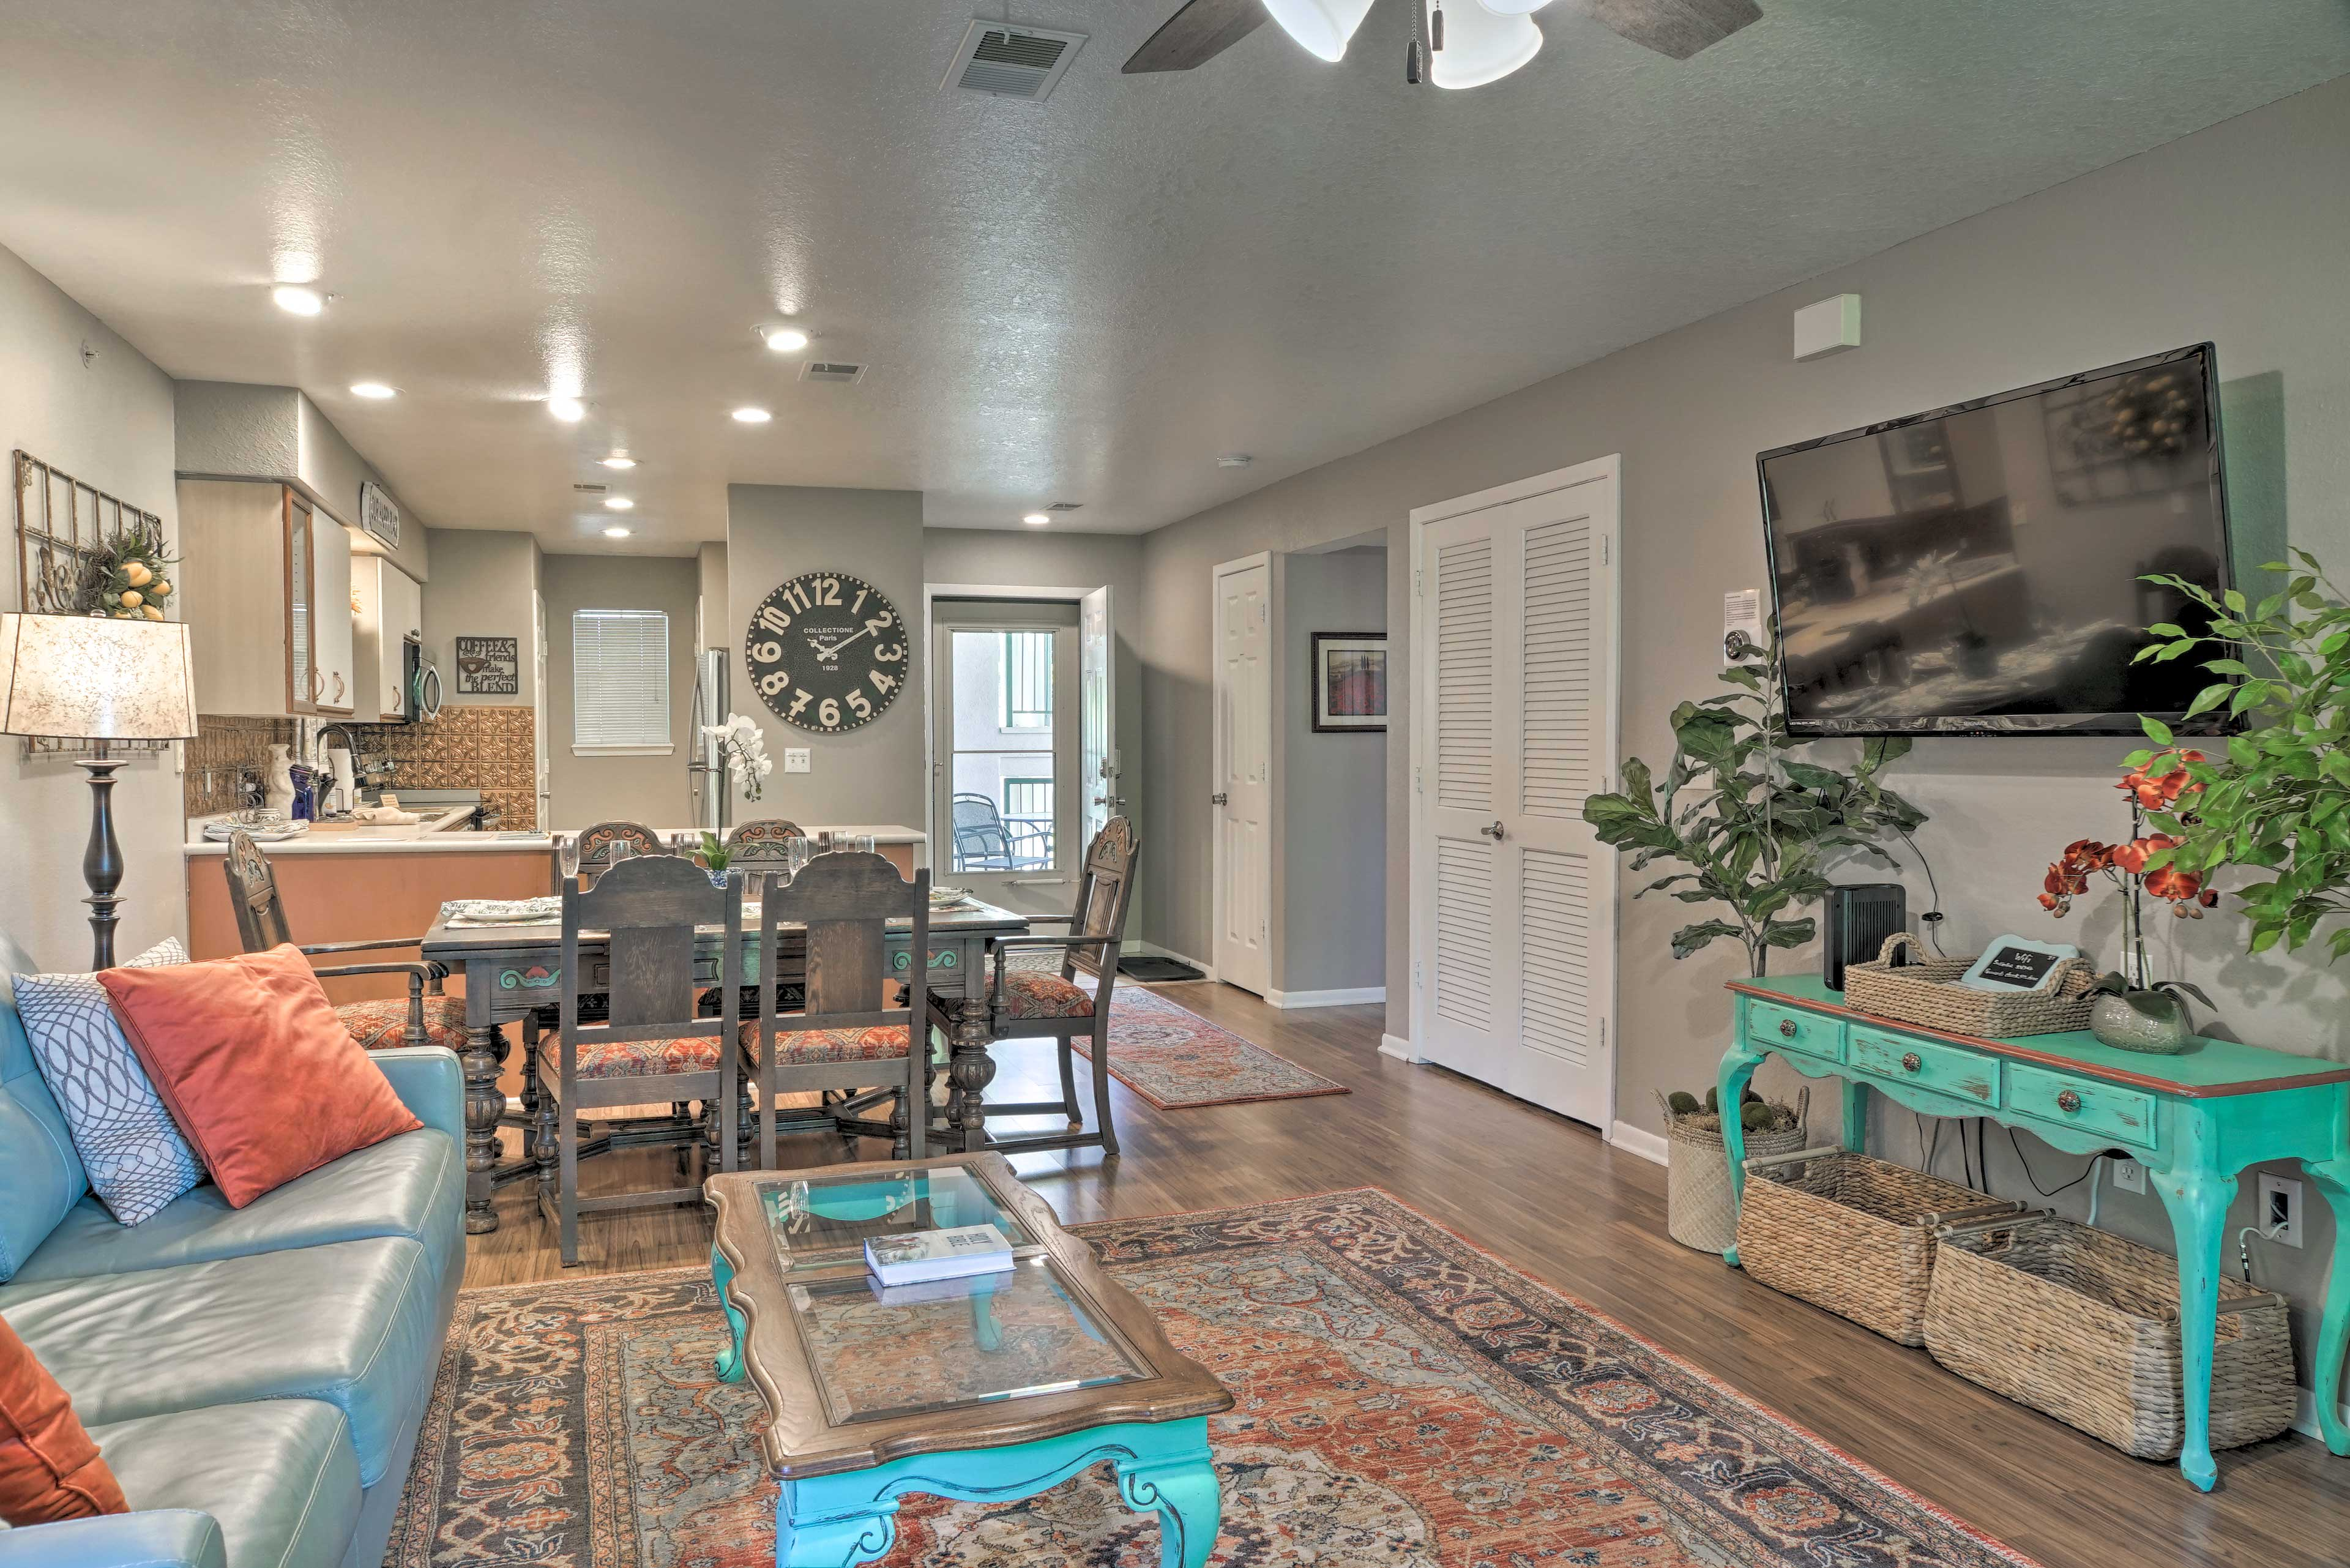 The unit offers new furnishings and an open floor plan.